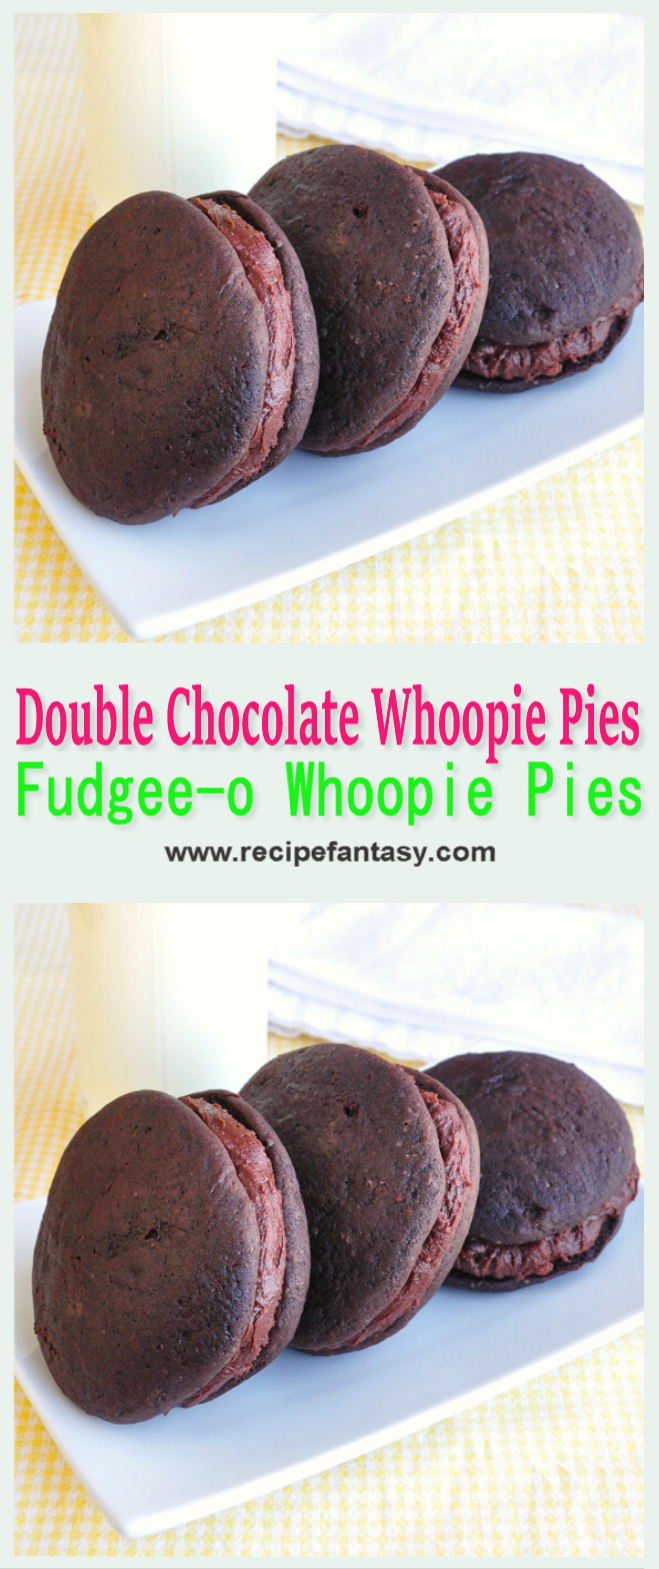 Double Chocolate Whoopie Pies A.K.A. Fudgee-o Whoopie Pies